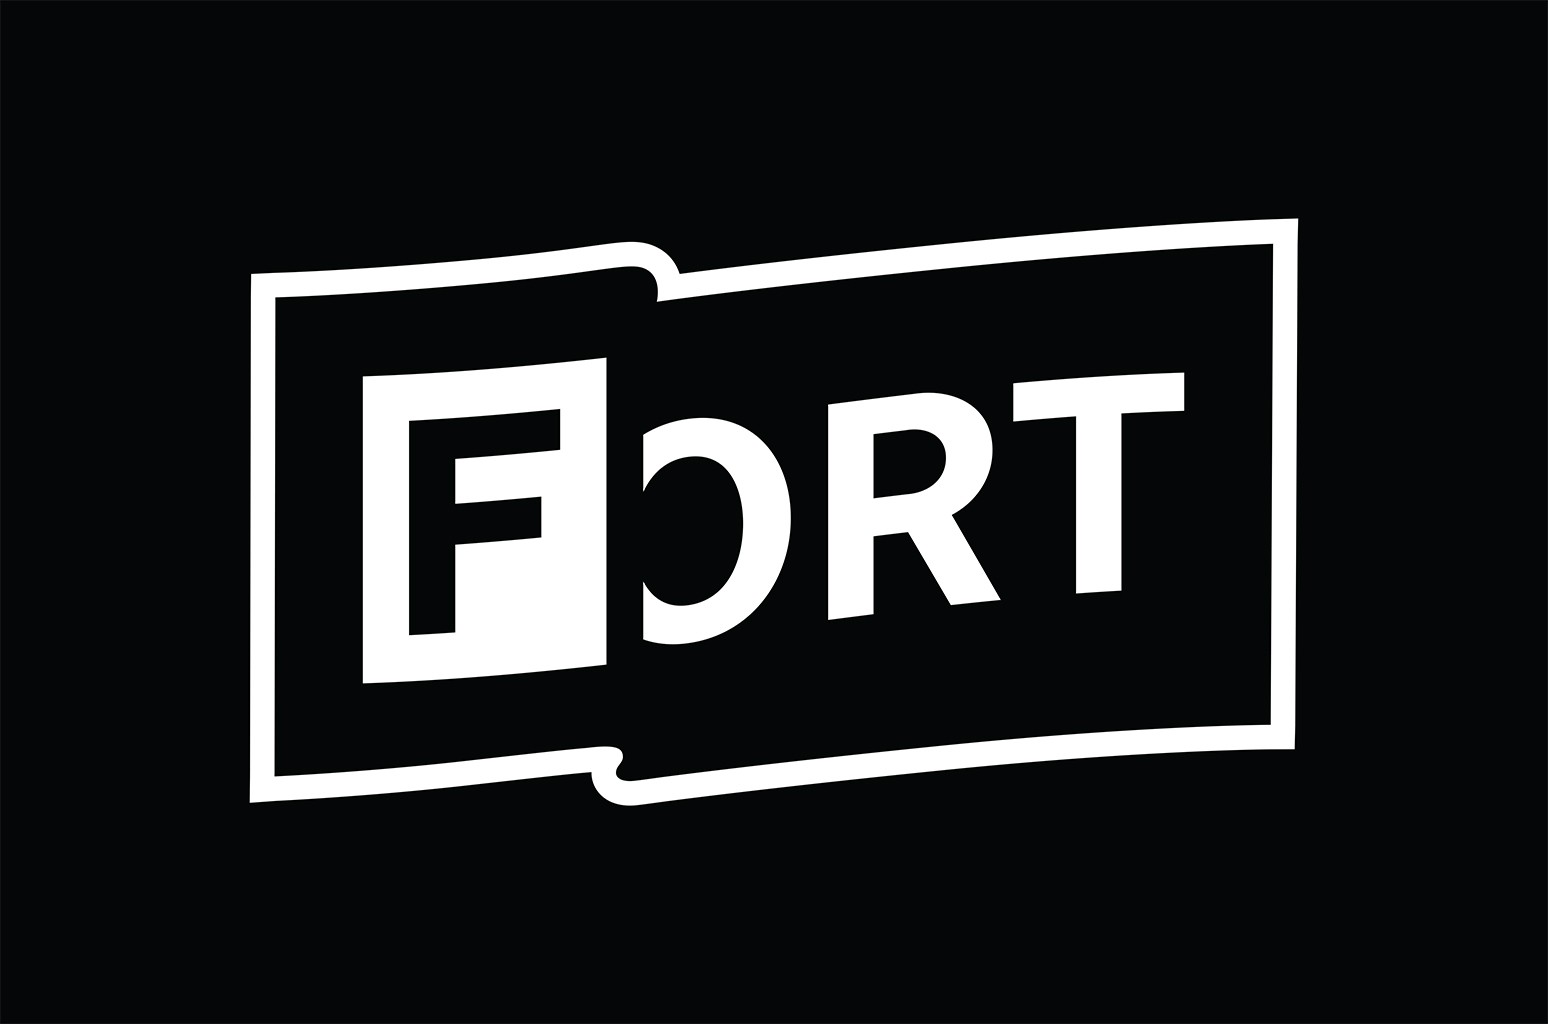 The FADER FORT logo